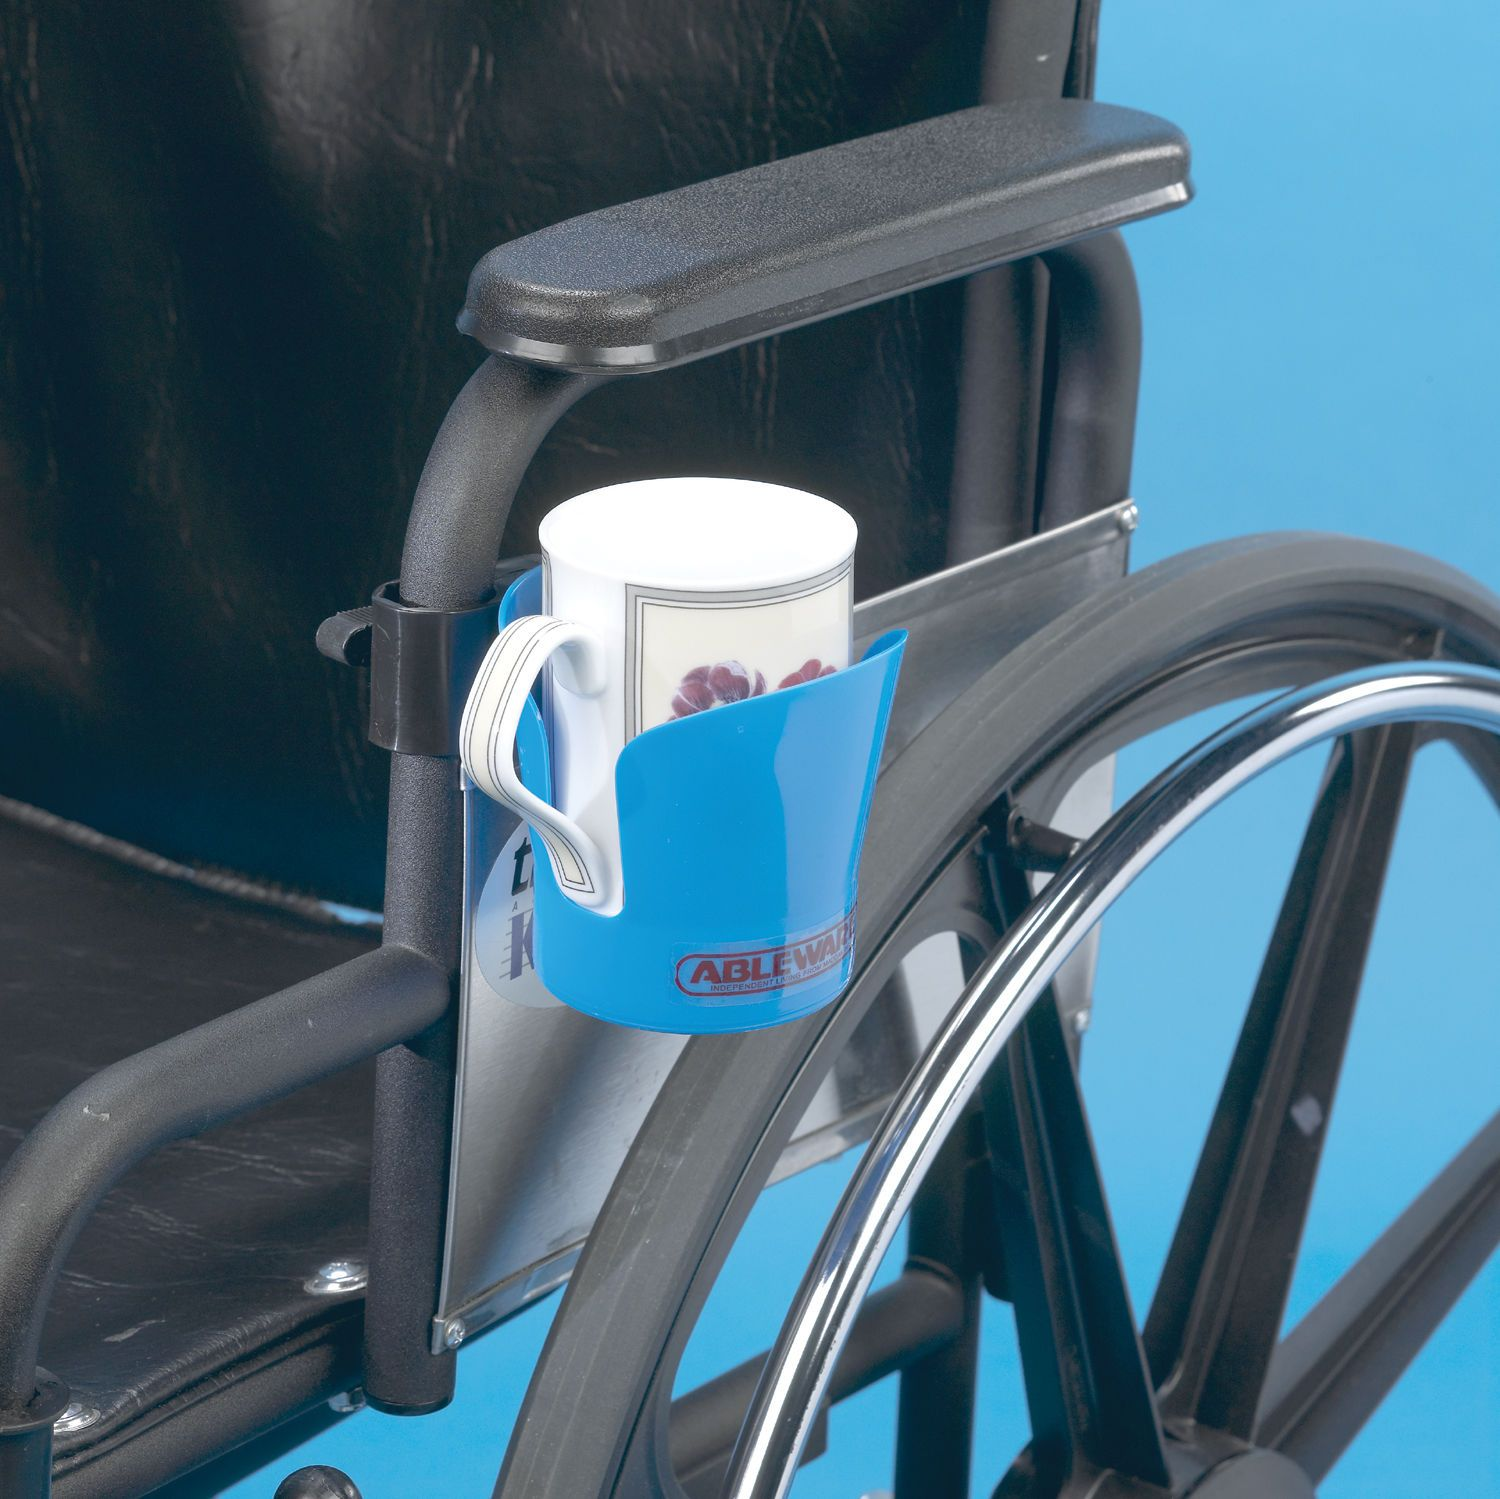 Wheelchair Accessories Ebay Purple Accent Chair 13 75 Accessory Cup Holder Fashion